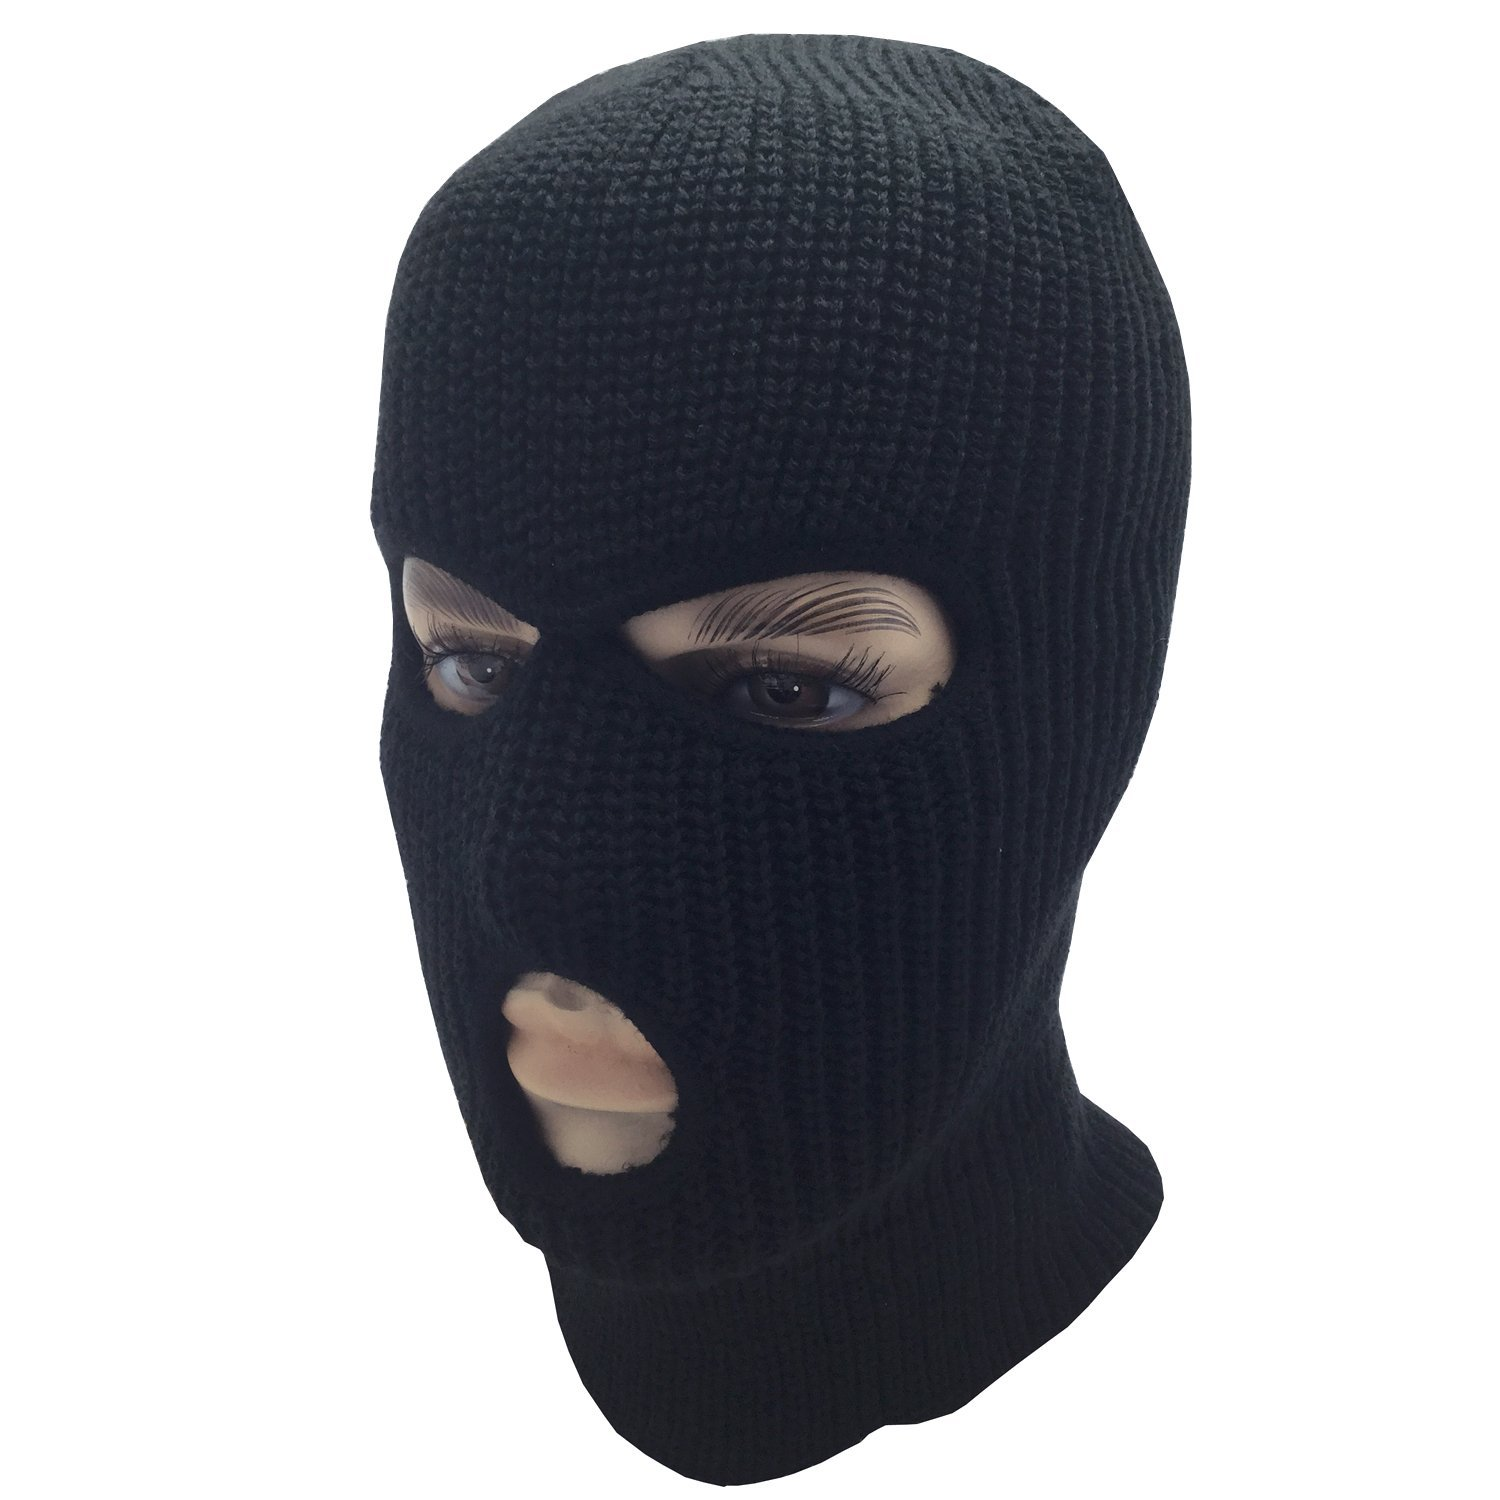 Cheap Mens Ski Mask, find Mens Ski Mask deals on line at Alibaba.com